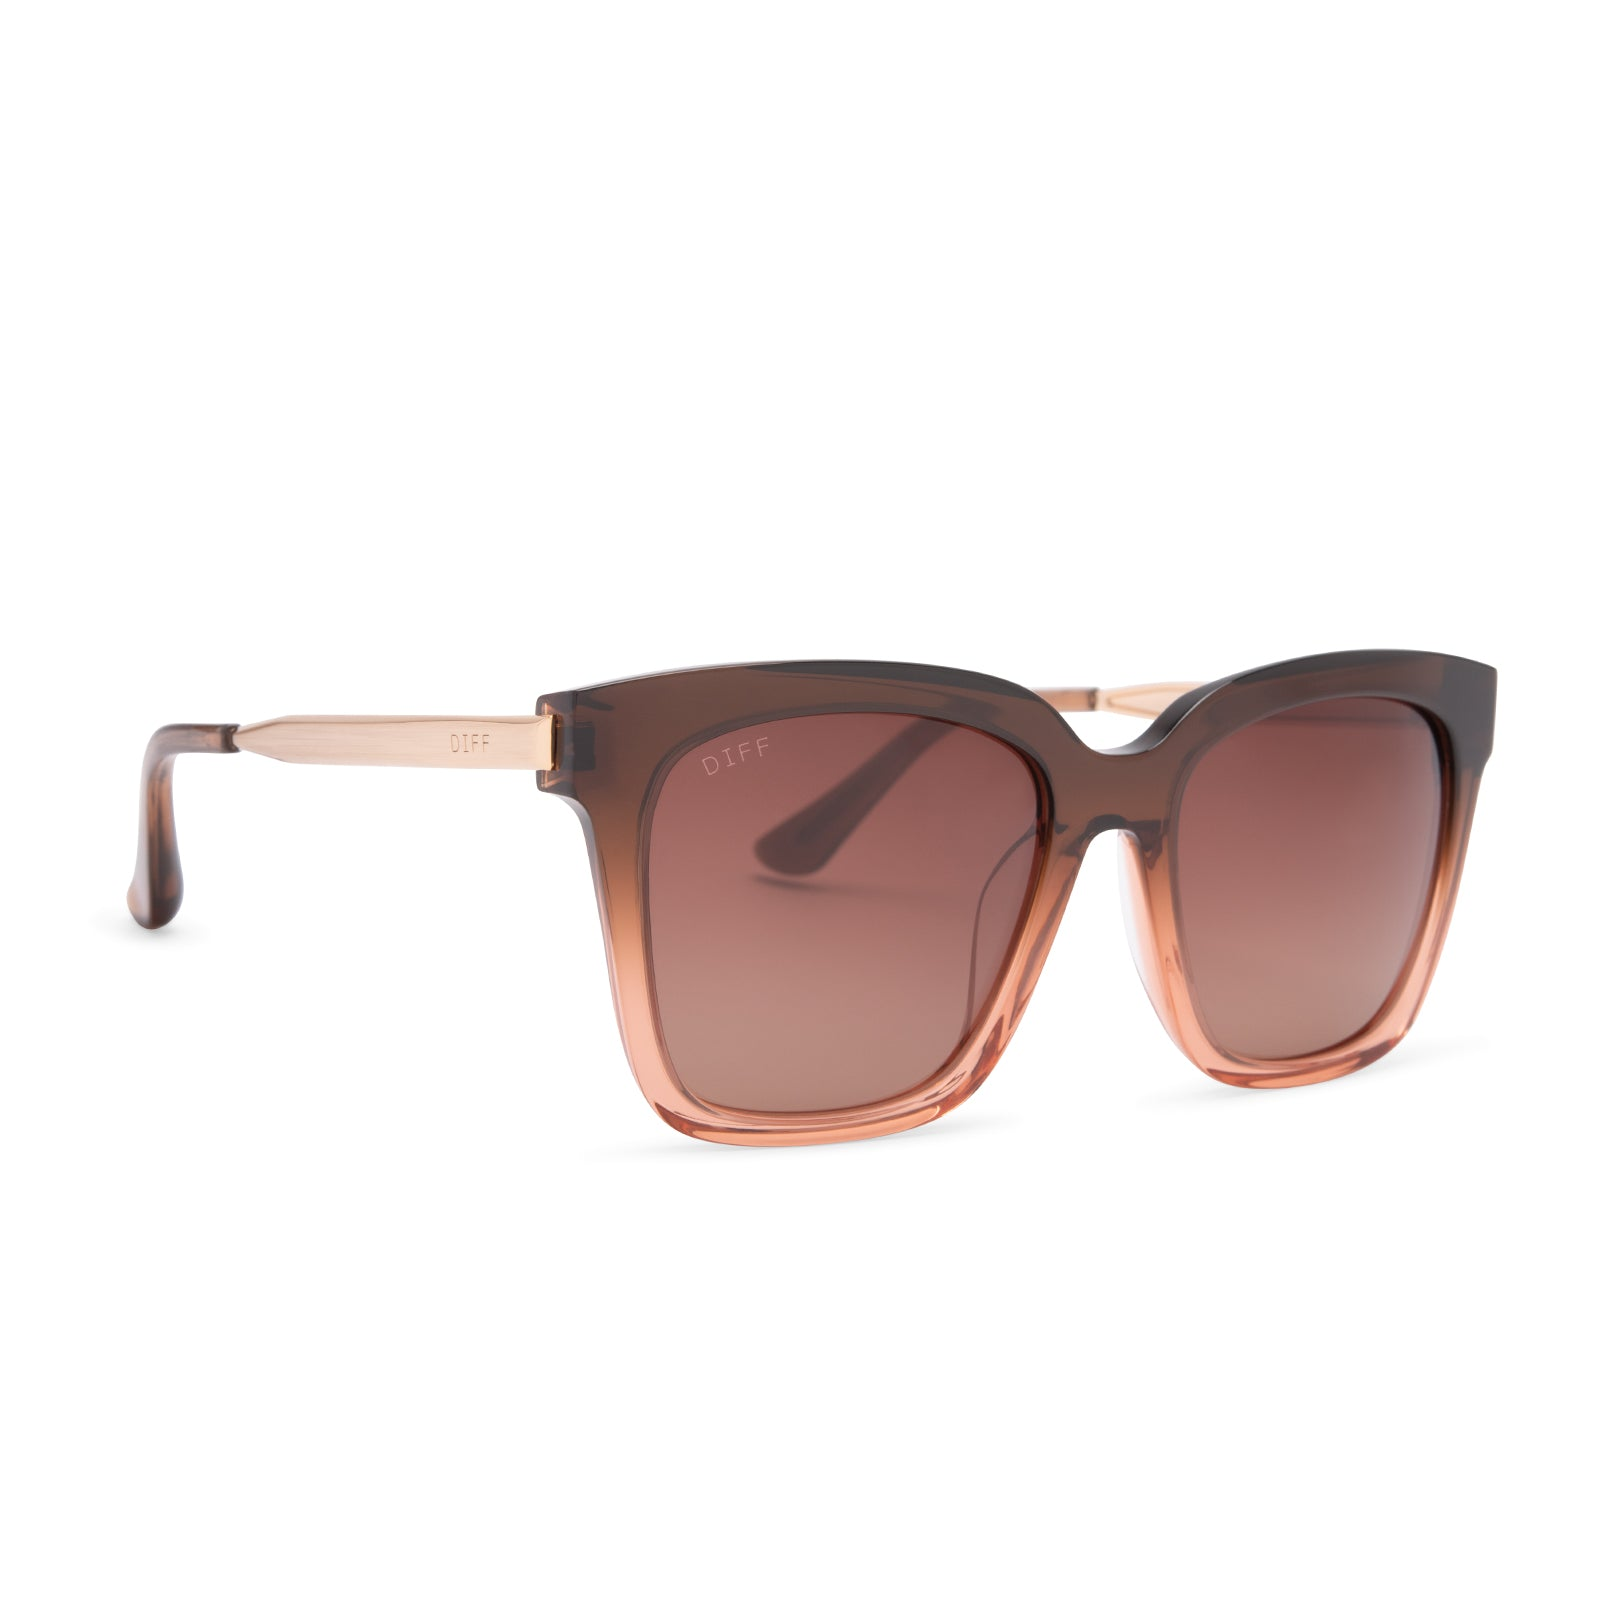 Bella sunglasses with taupe ombre crystal frames and brown gradient polarized lens angle view